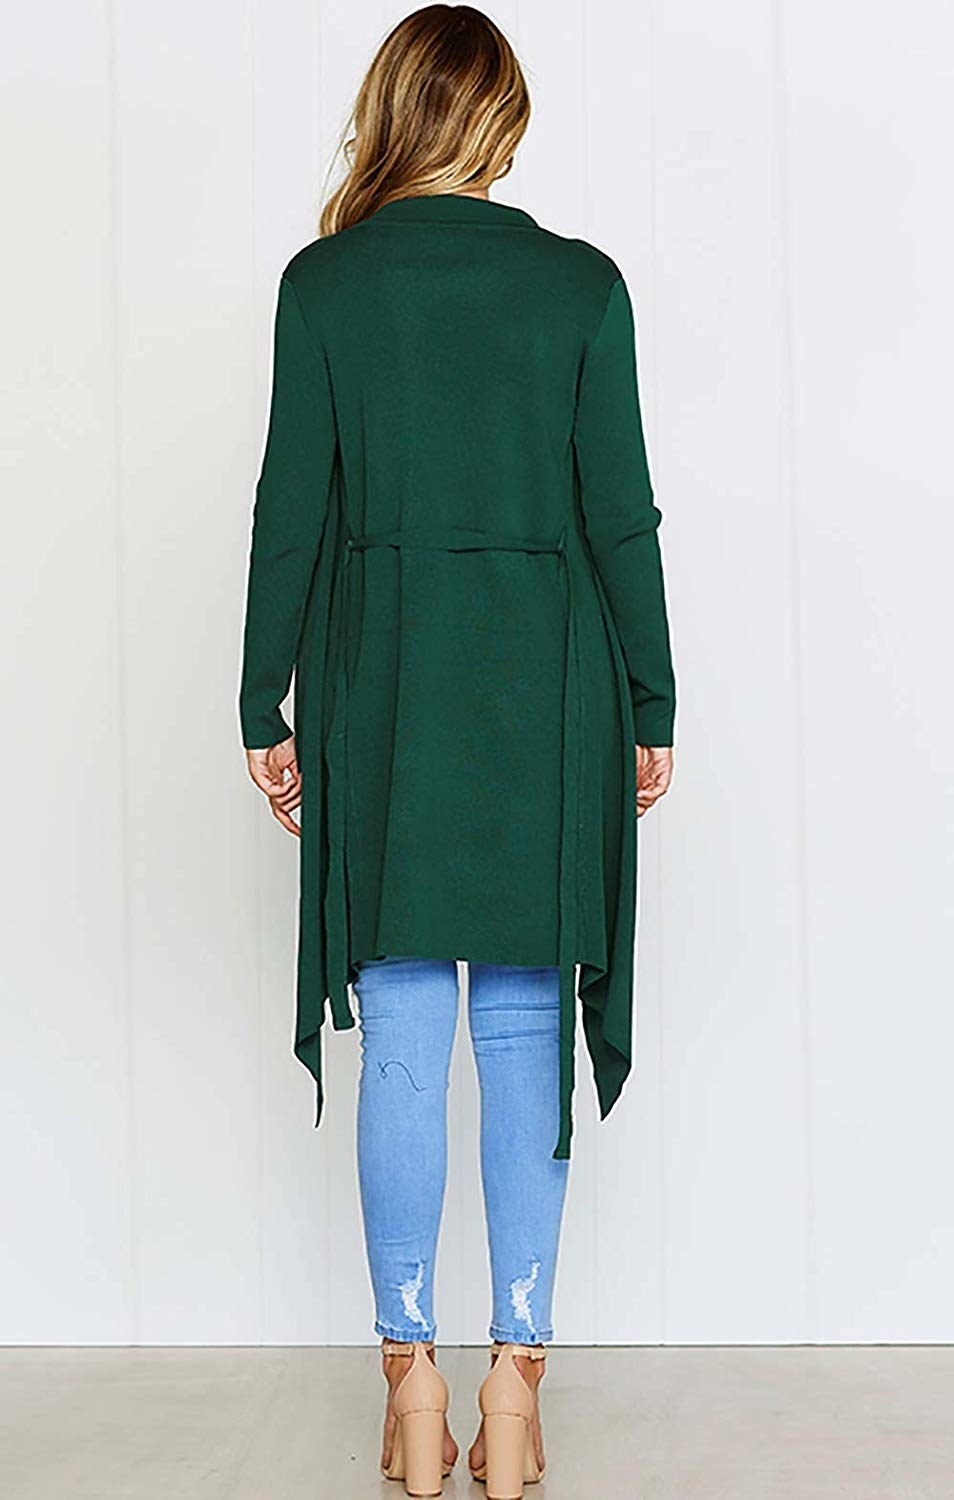 30494d6db30 2. An asymmetrical belted cardigan with a gorgeous silhouette.